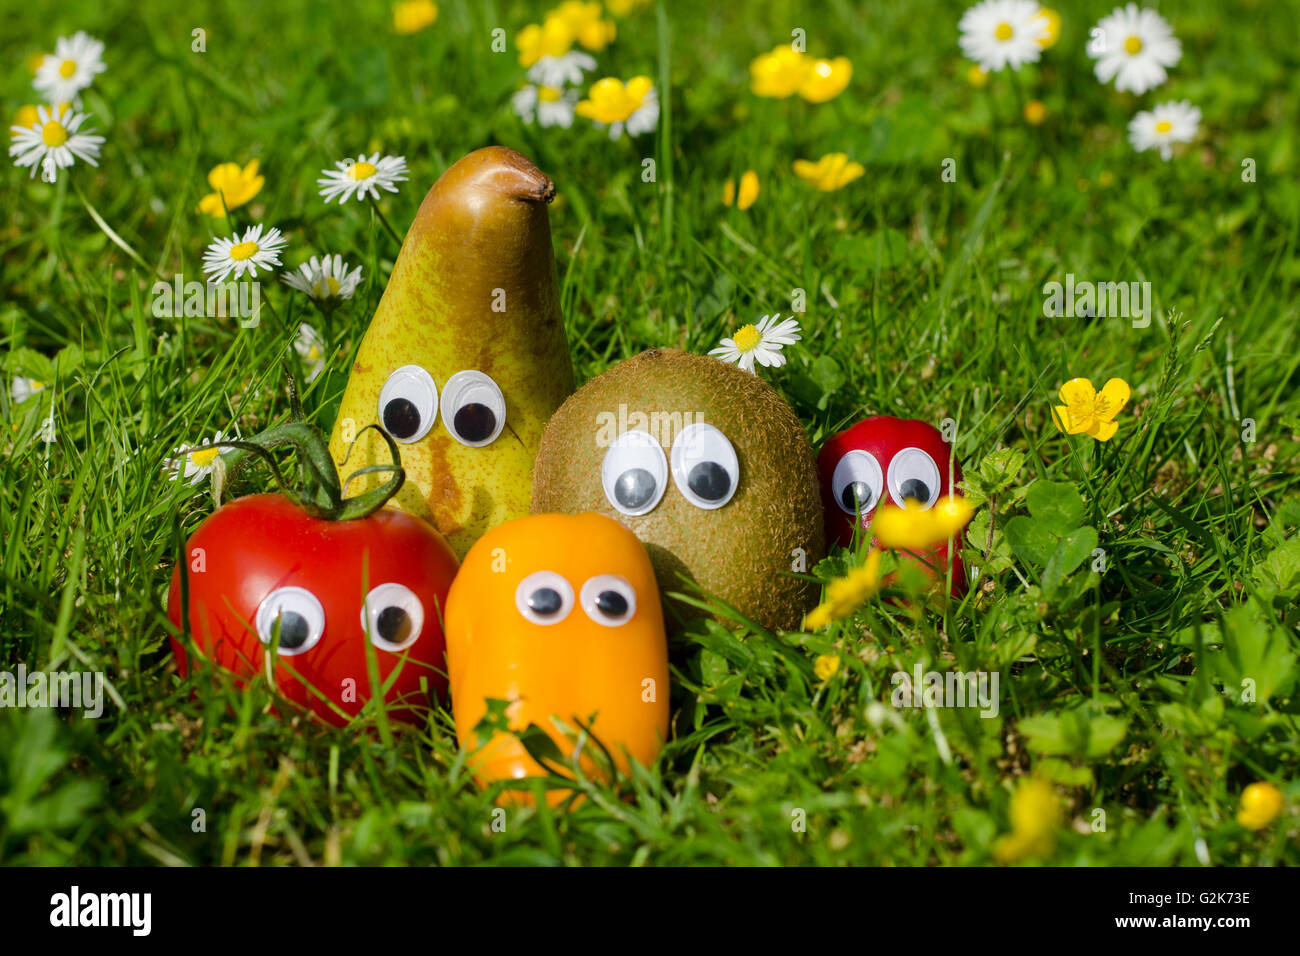 Funny vegetables and fruits with eyes in a summer meadow - Stock Image